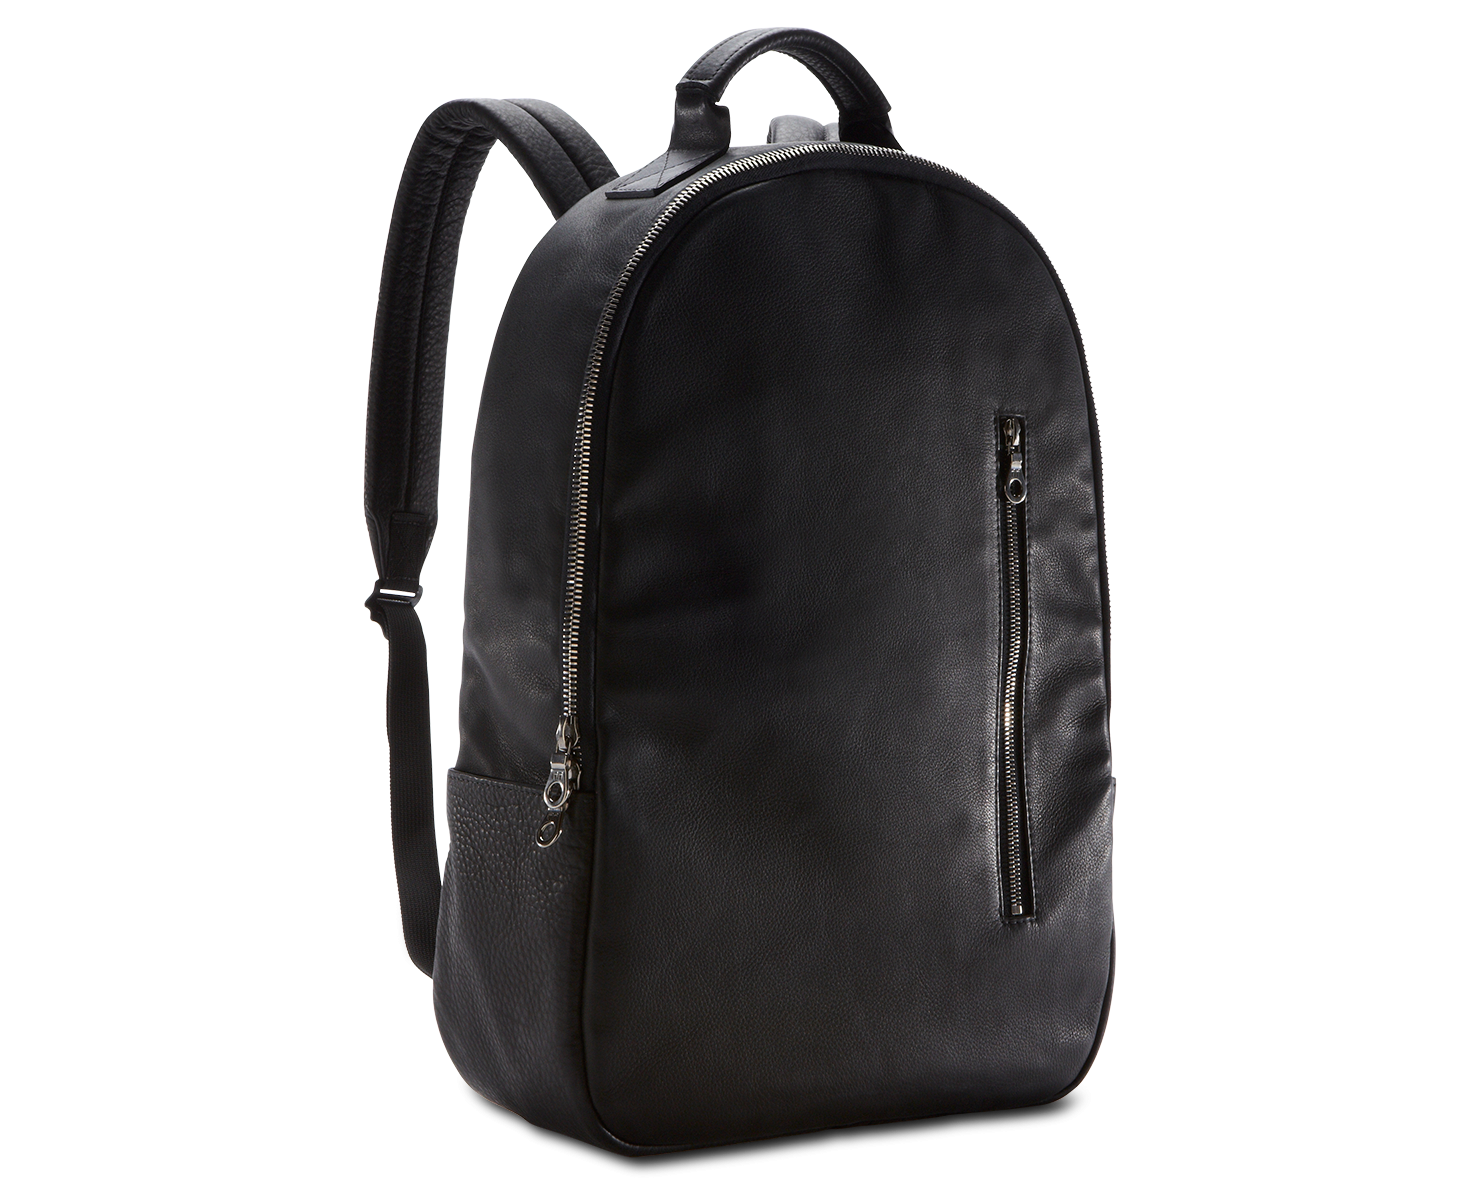 Backpack Black Leather SJ1g0Kot